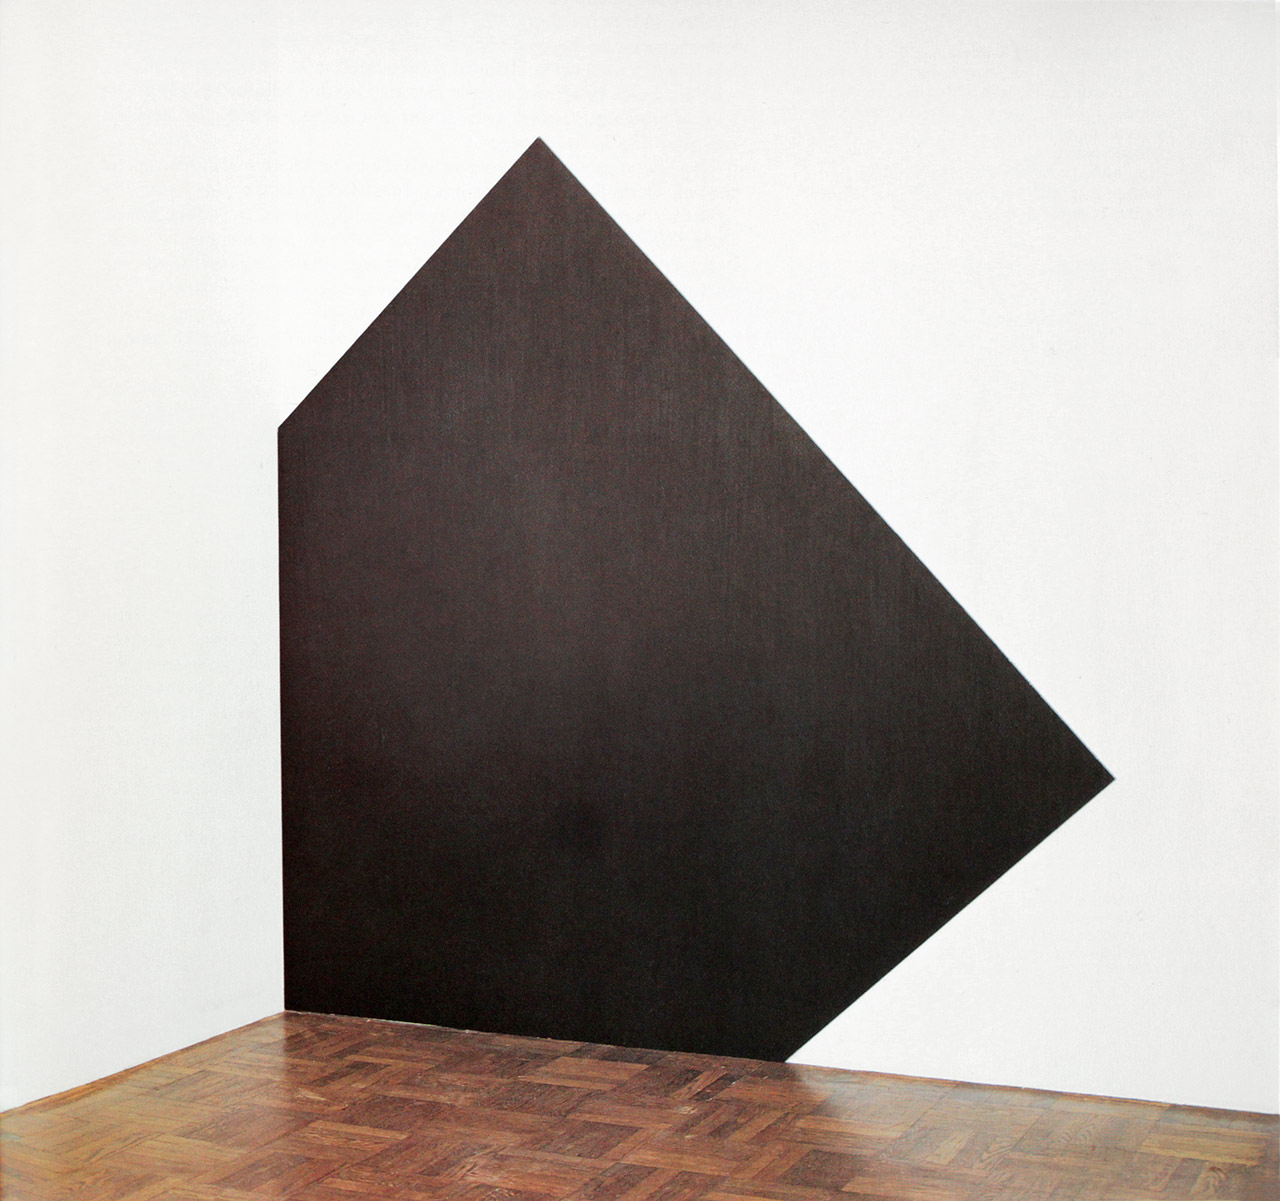 Richard Serra, Left Square into Left Corner, 1981, Paintstik on aluminum, 271cm x 264 cm, Edition of 6. Courtesy: Gemini G.E.L., Los Angeles